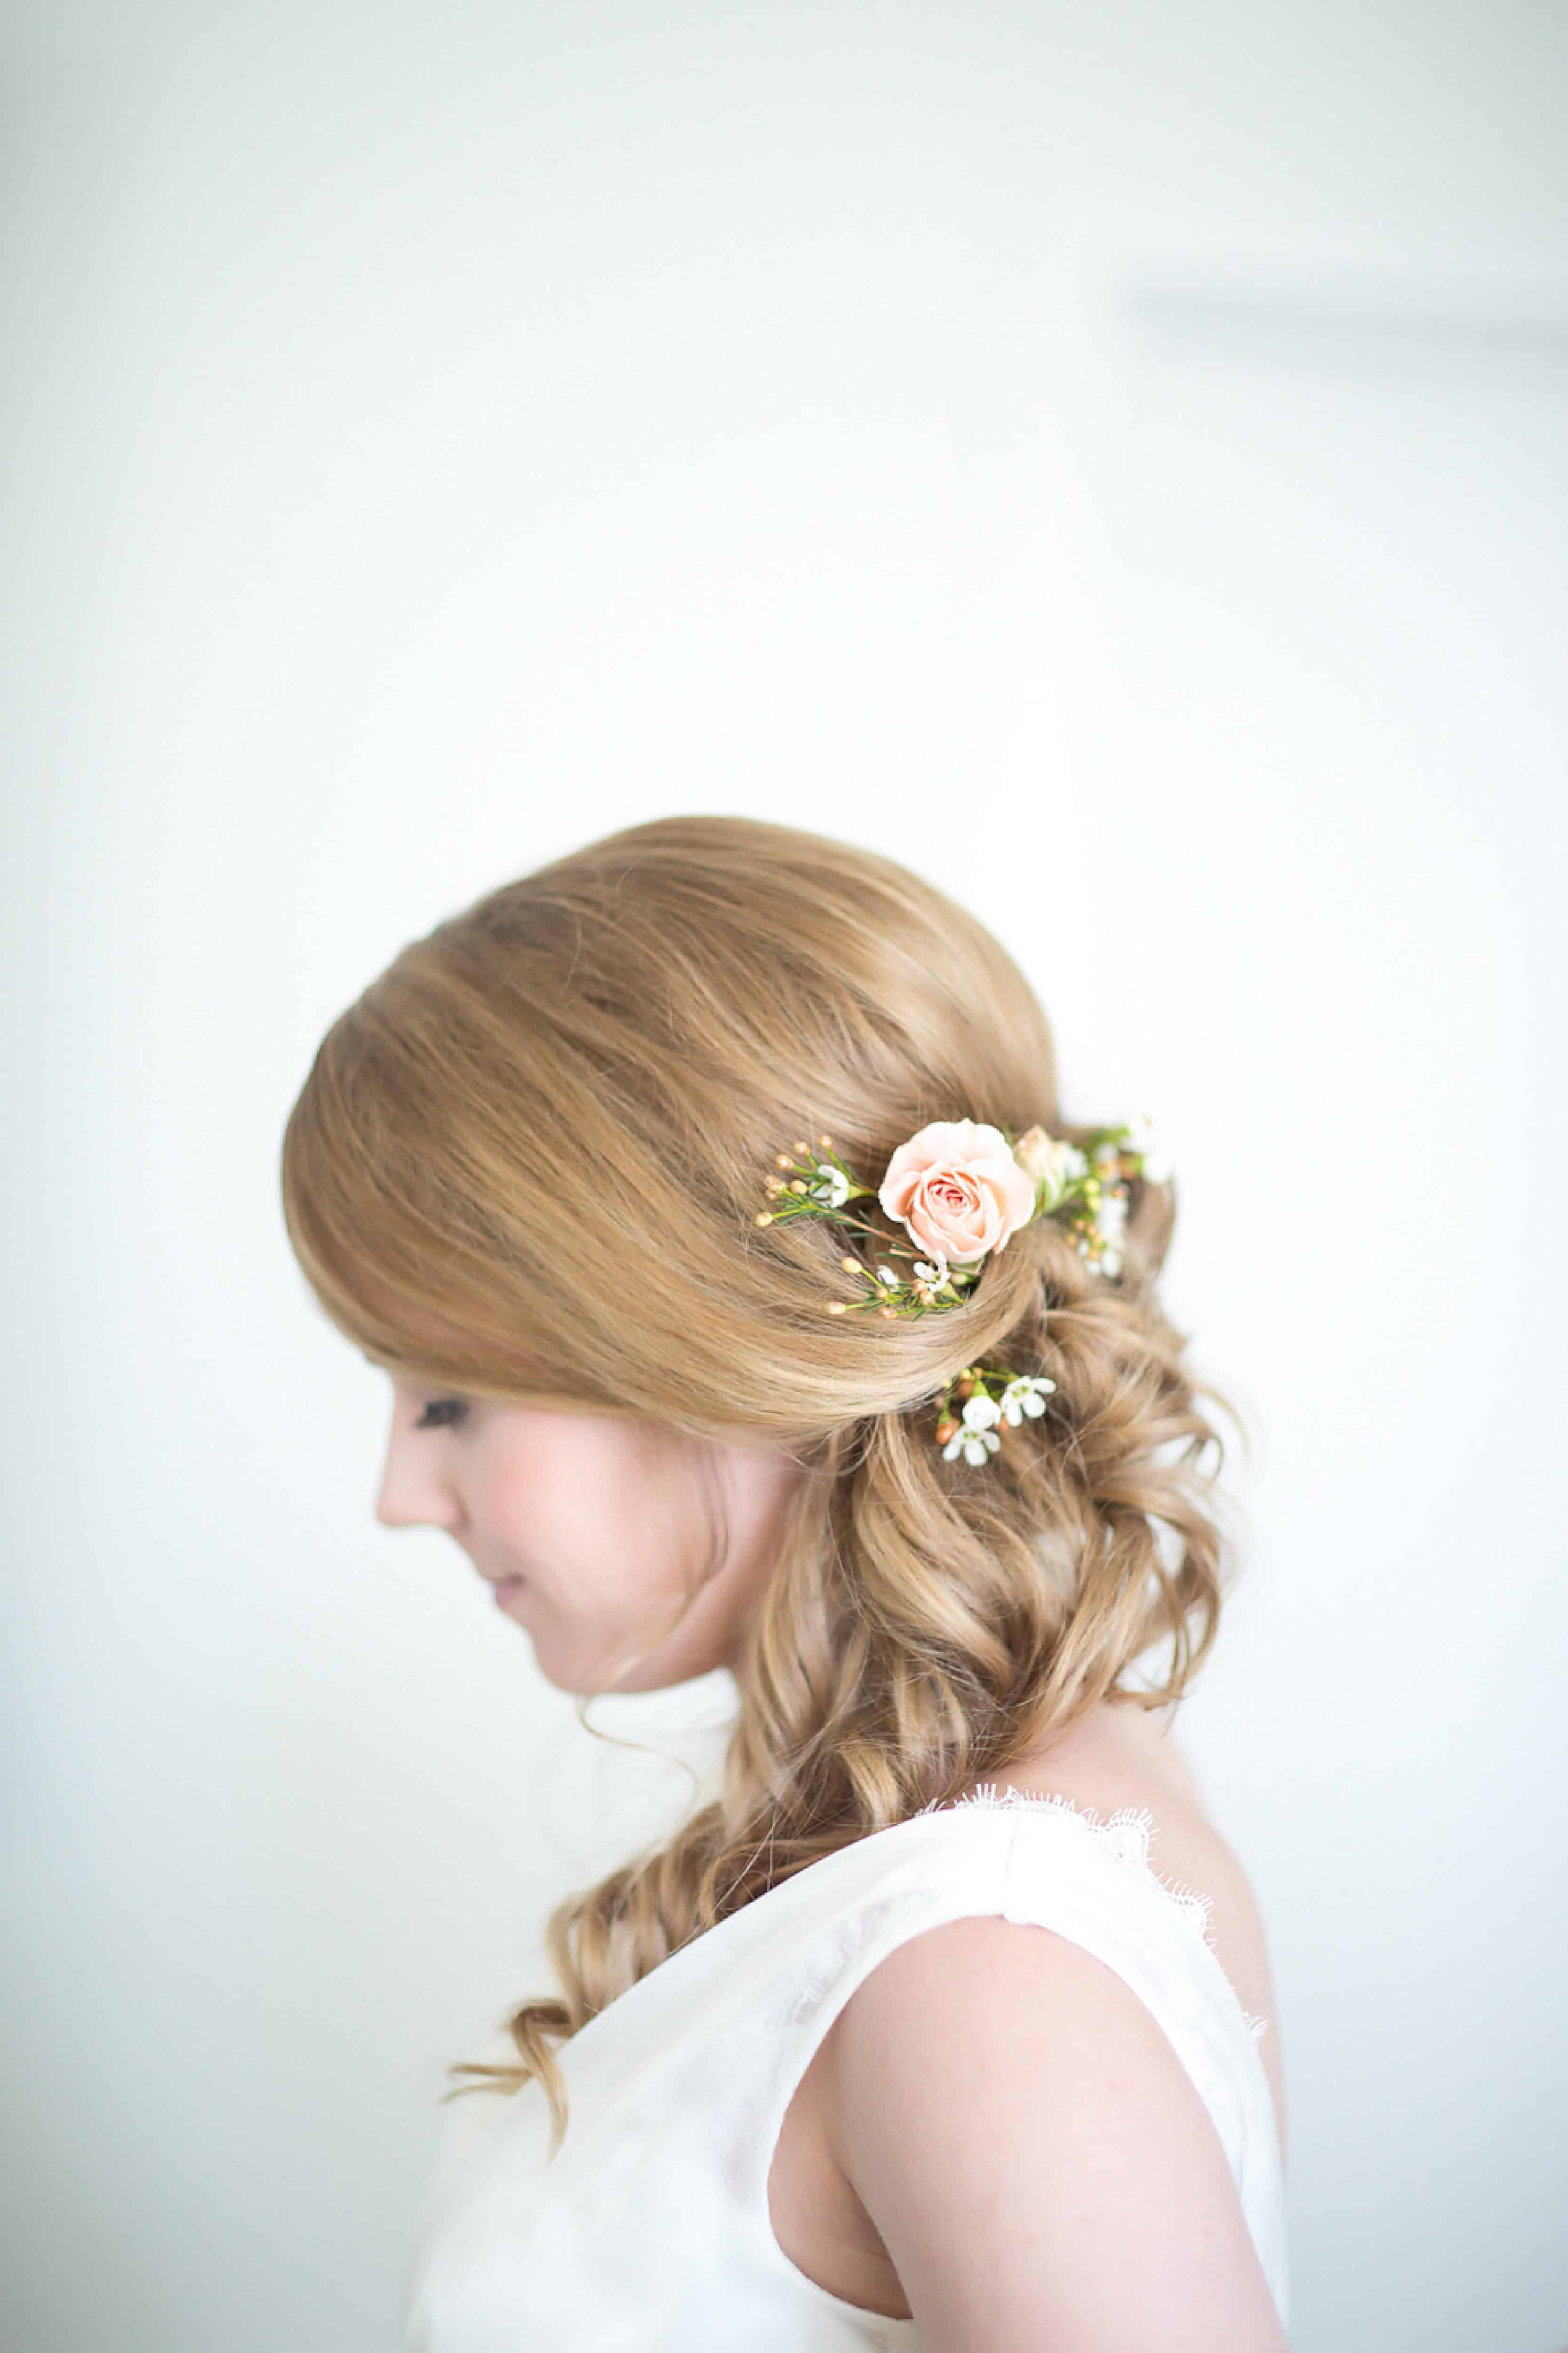 Red Carpet Ready by Christina with Celsia Florist, wedding hair